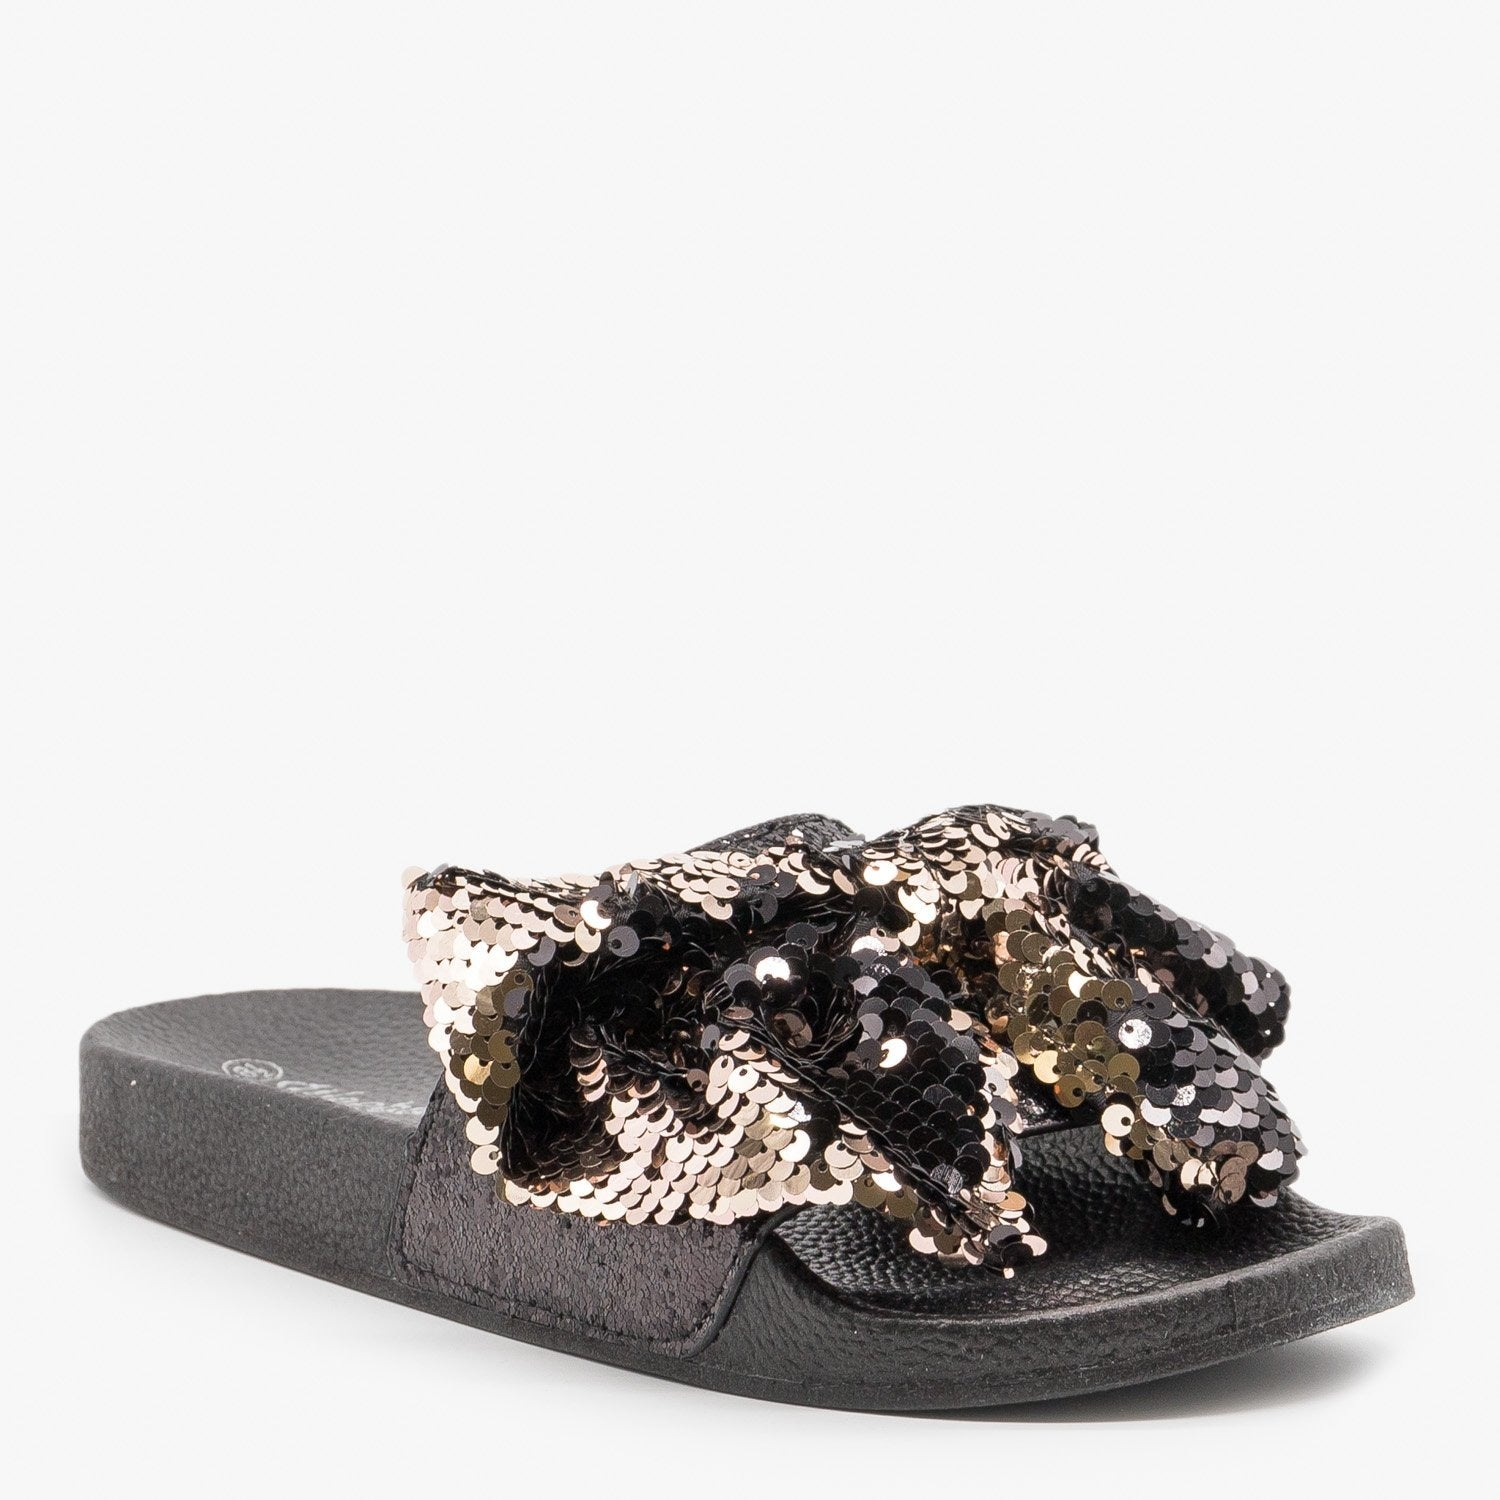 Sequin Bow Slides Weeboo Shoes Kelly-01